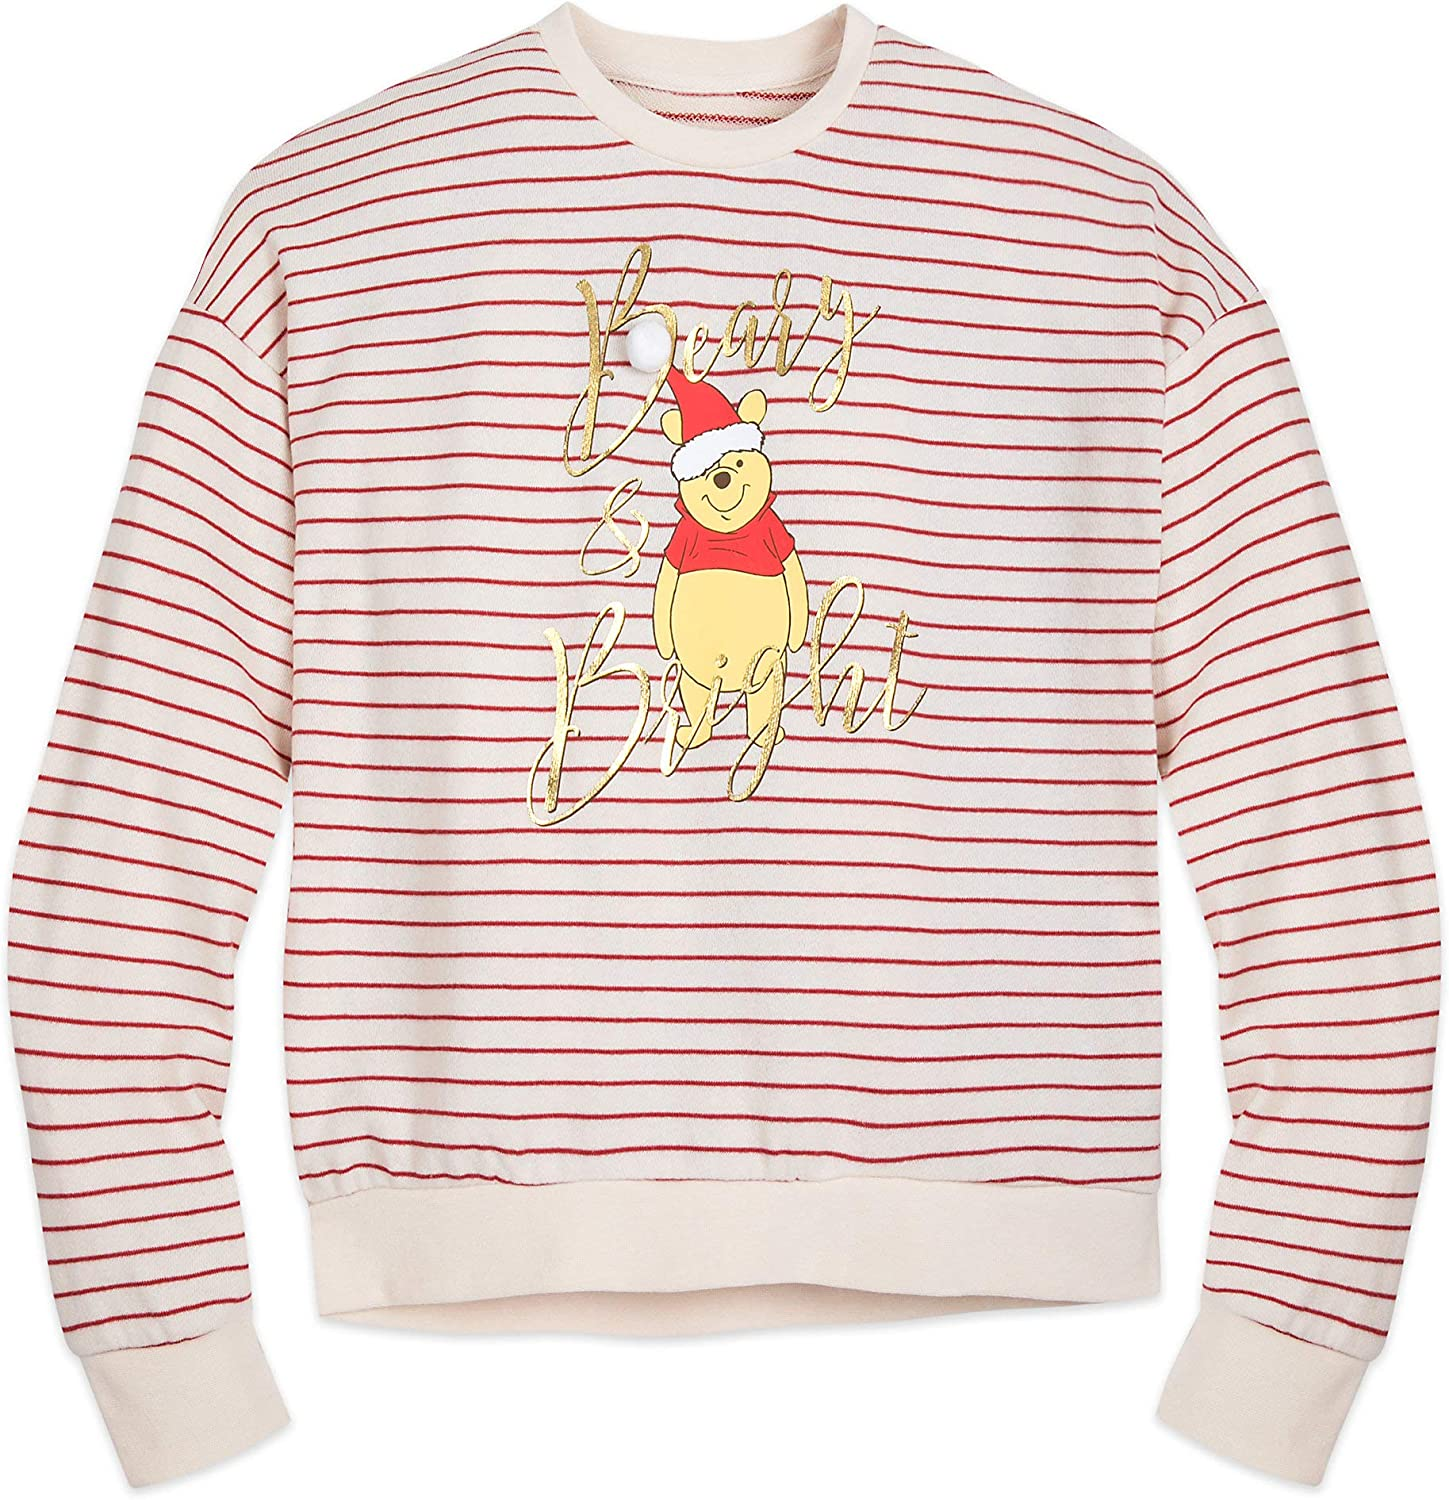 Disney Winnie The Pooh Holiday Pullover Sweater for Women Multi